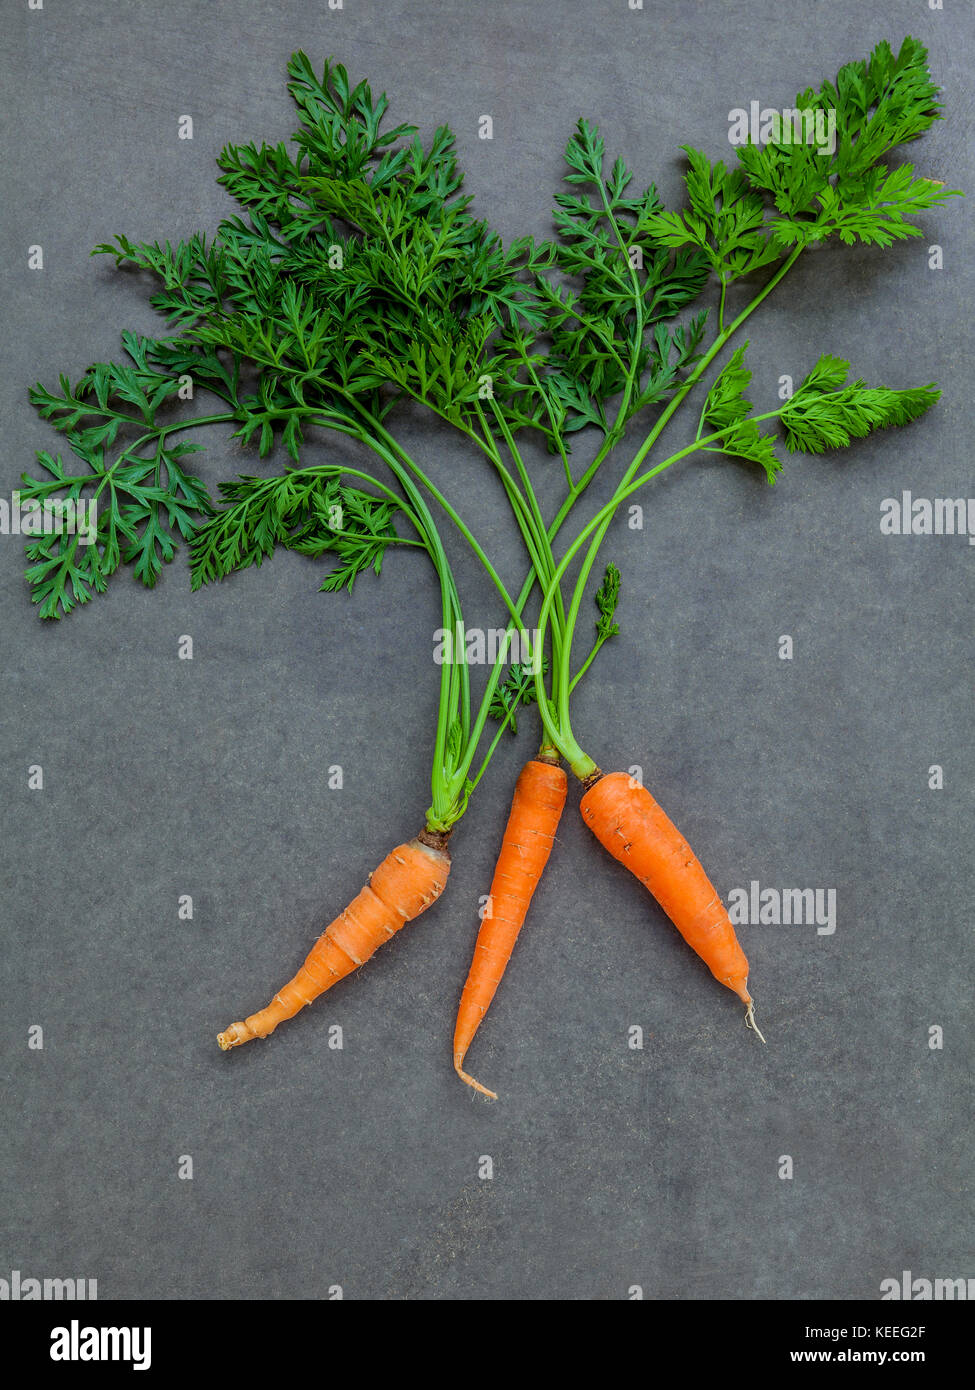 Fresh carrots bunch on dark concrete background. Raw fresh carrots with tails. Fresh organic carrots with leaves. - Stock Image